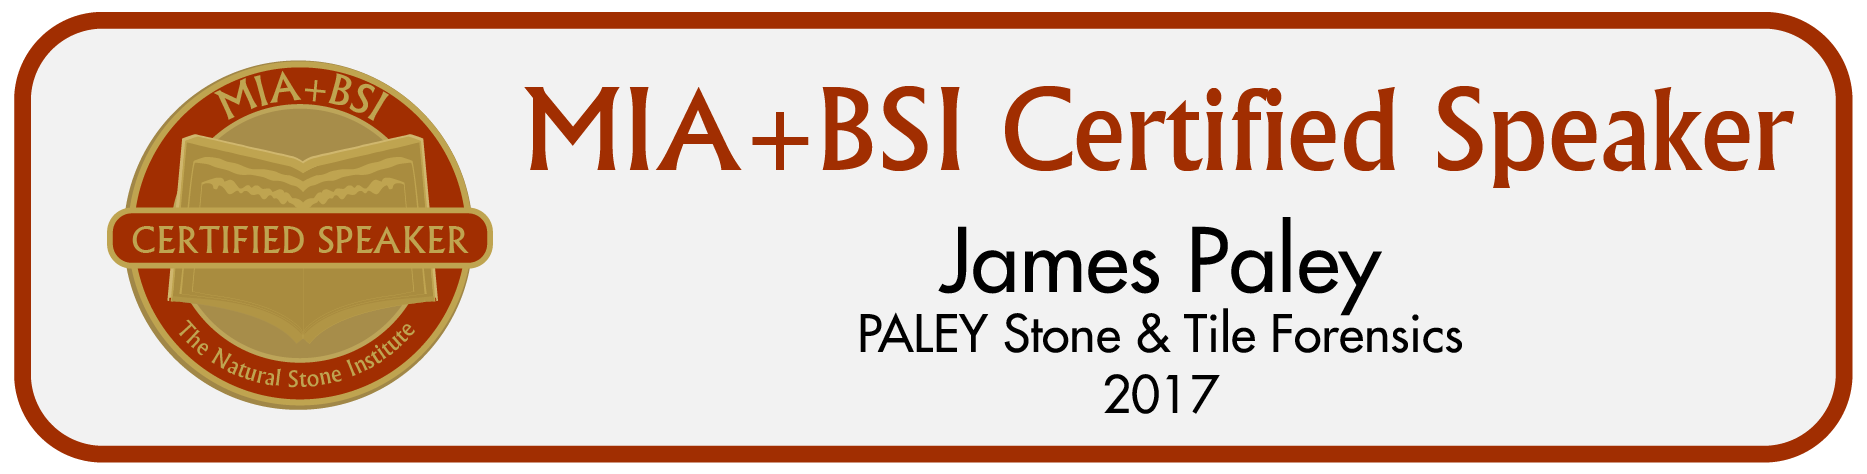 PALEY Stone & Tile Forensics James Paley Certified Speaker